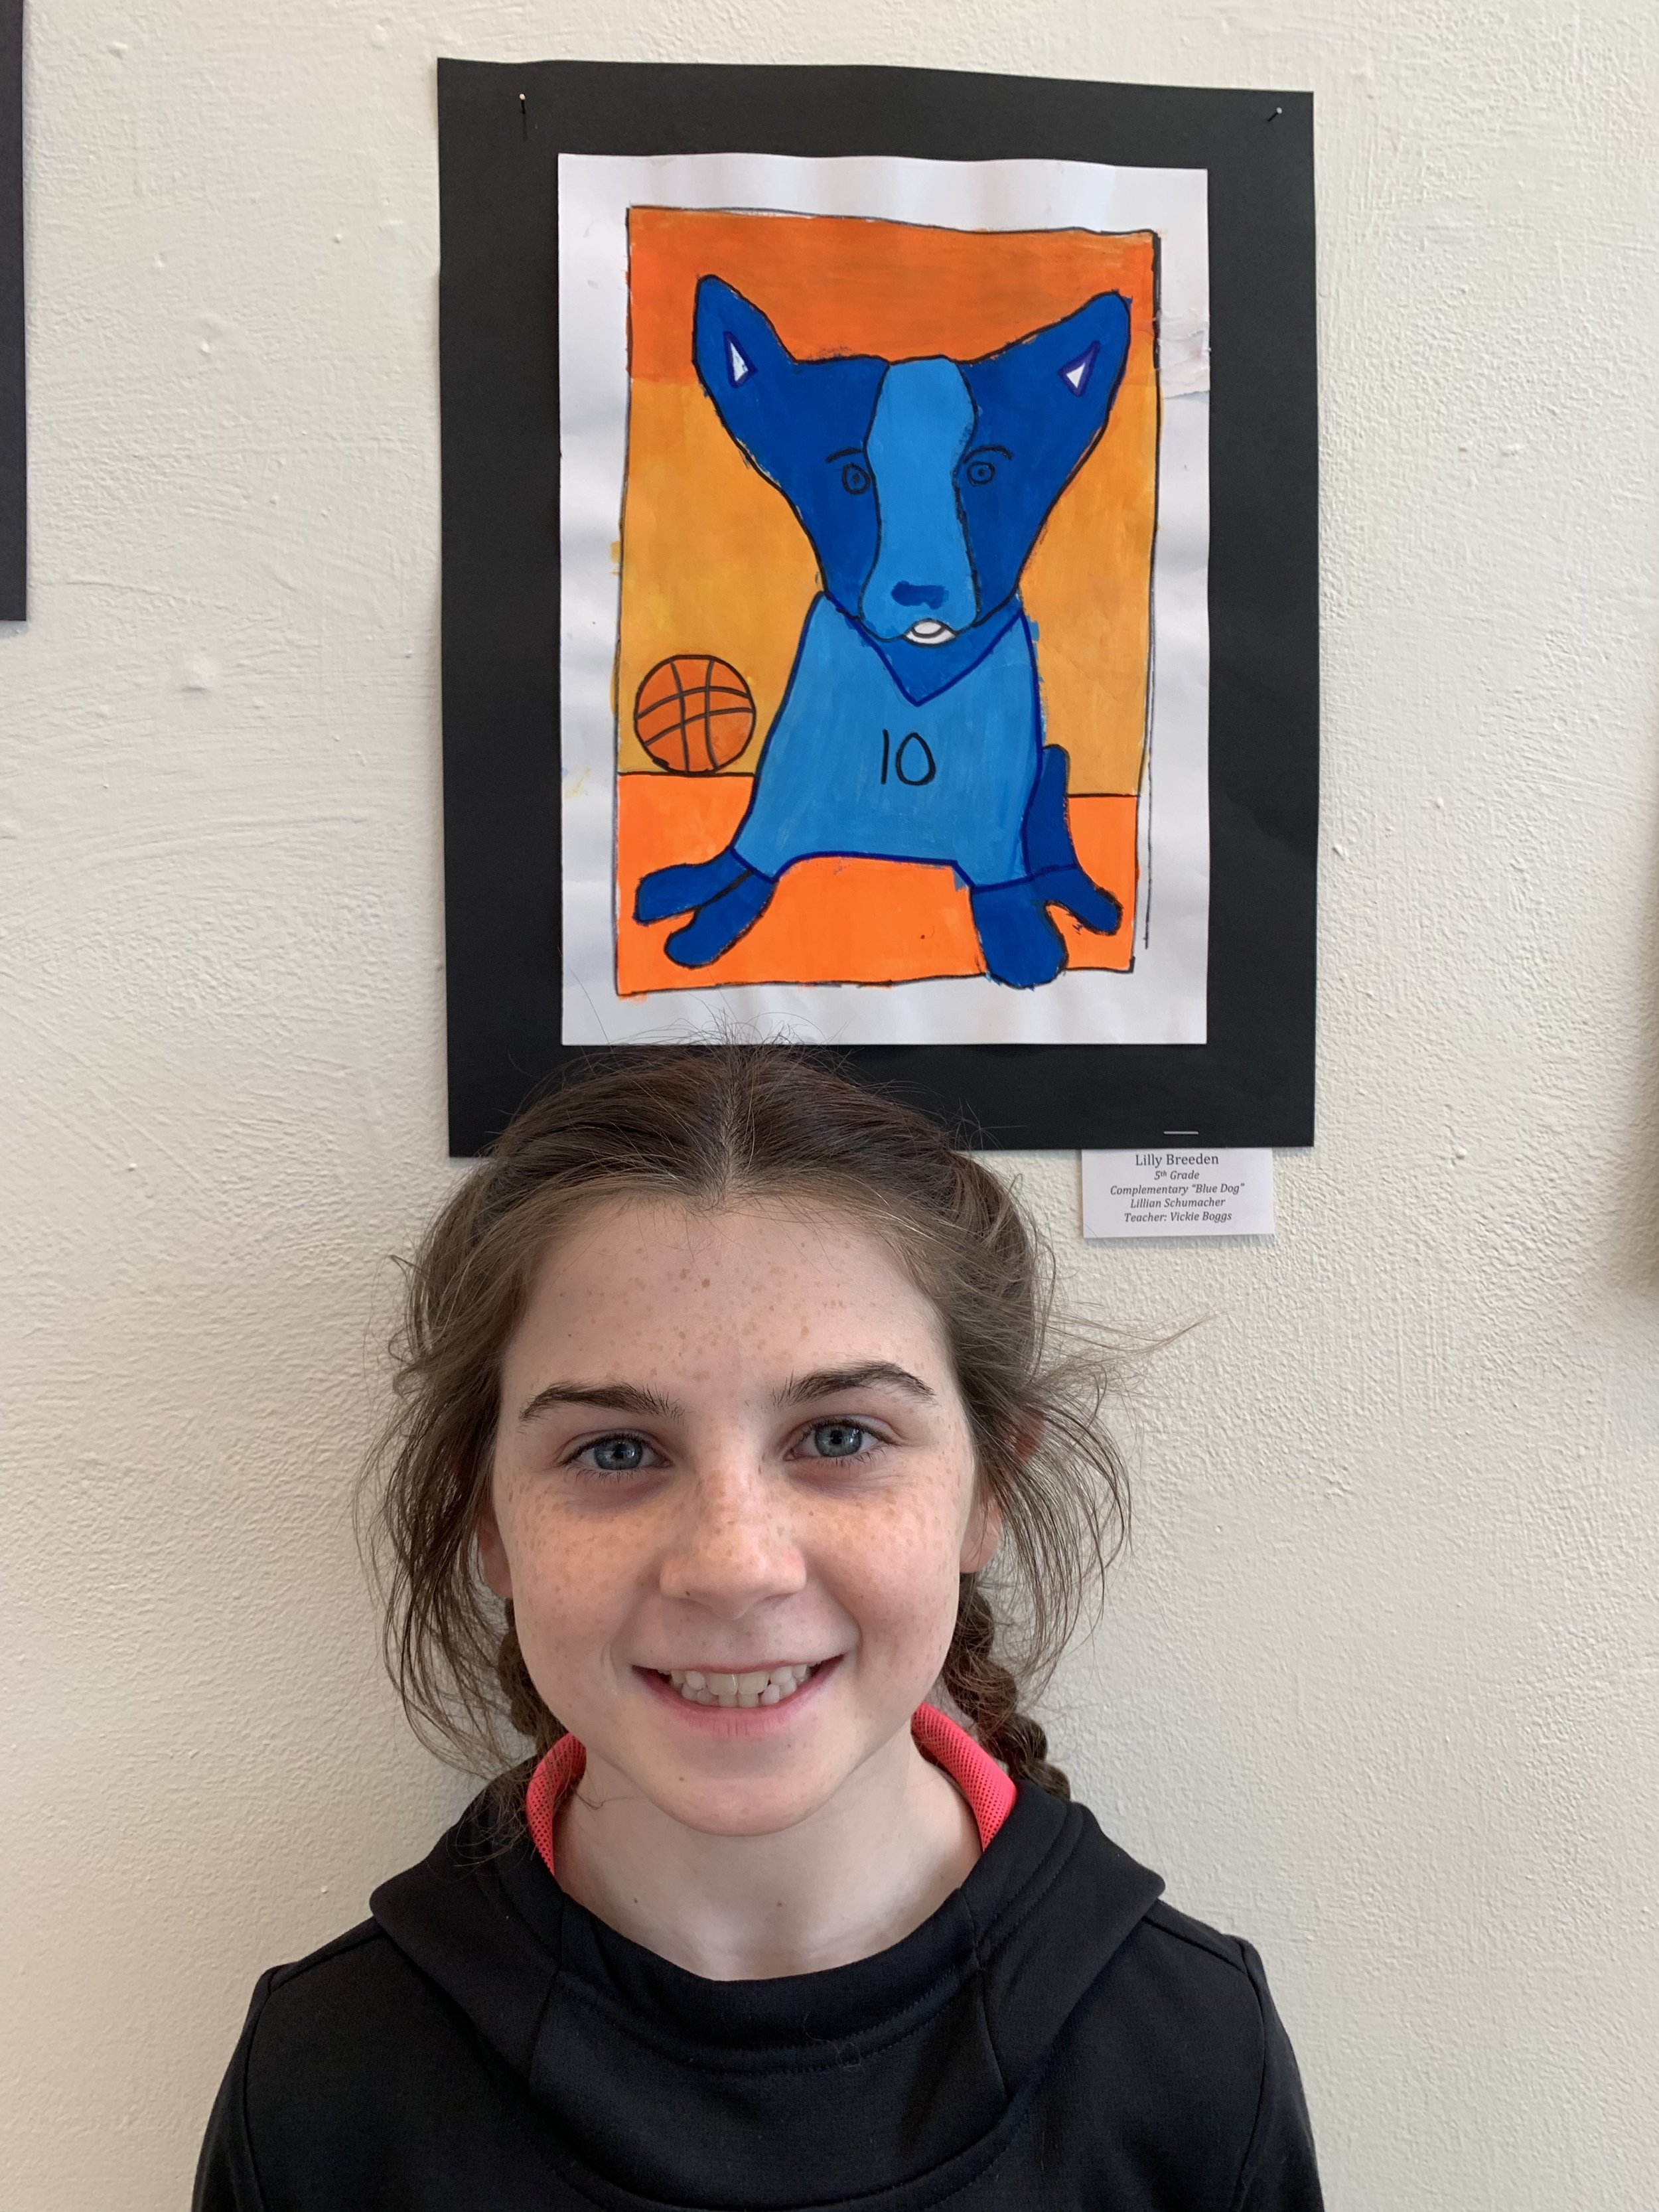 "Congratulations   to Lilly whose ""Blue Dog"" was chosen for exhibition at the Stocksdale Art Gallery at William Jewell College. Lilly, is that Rosco? Blue and orange are GREAT complimentary colors. And I love the bit of white in his ears and mouth too. Is #10 your number? (My daughter's number was #10 too - in volleyball.)"